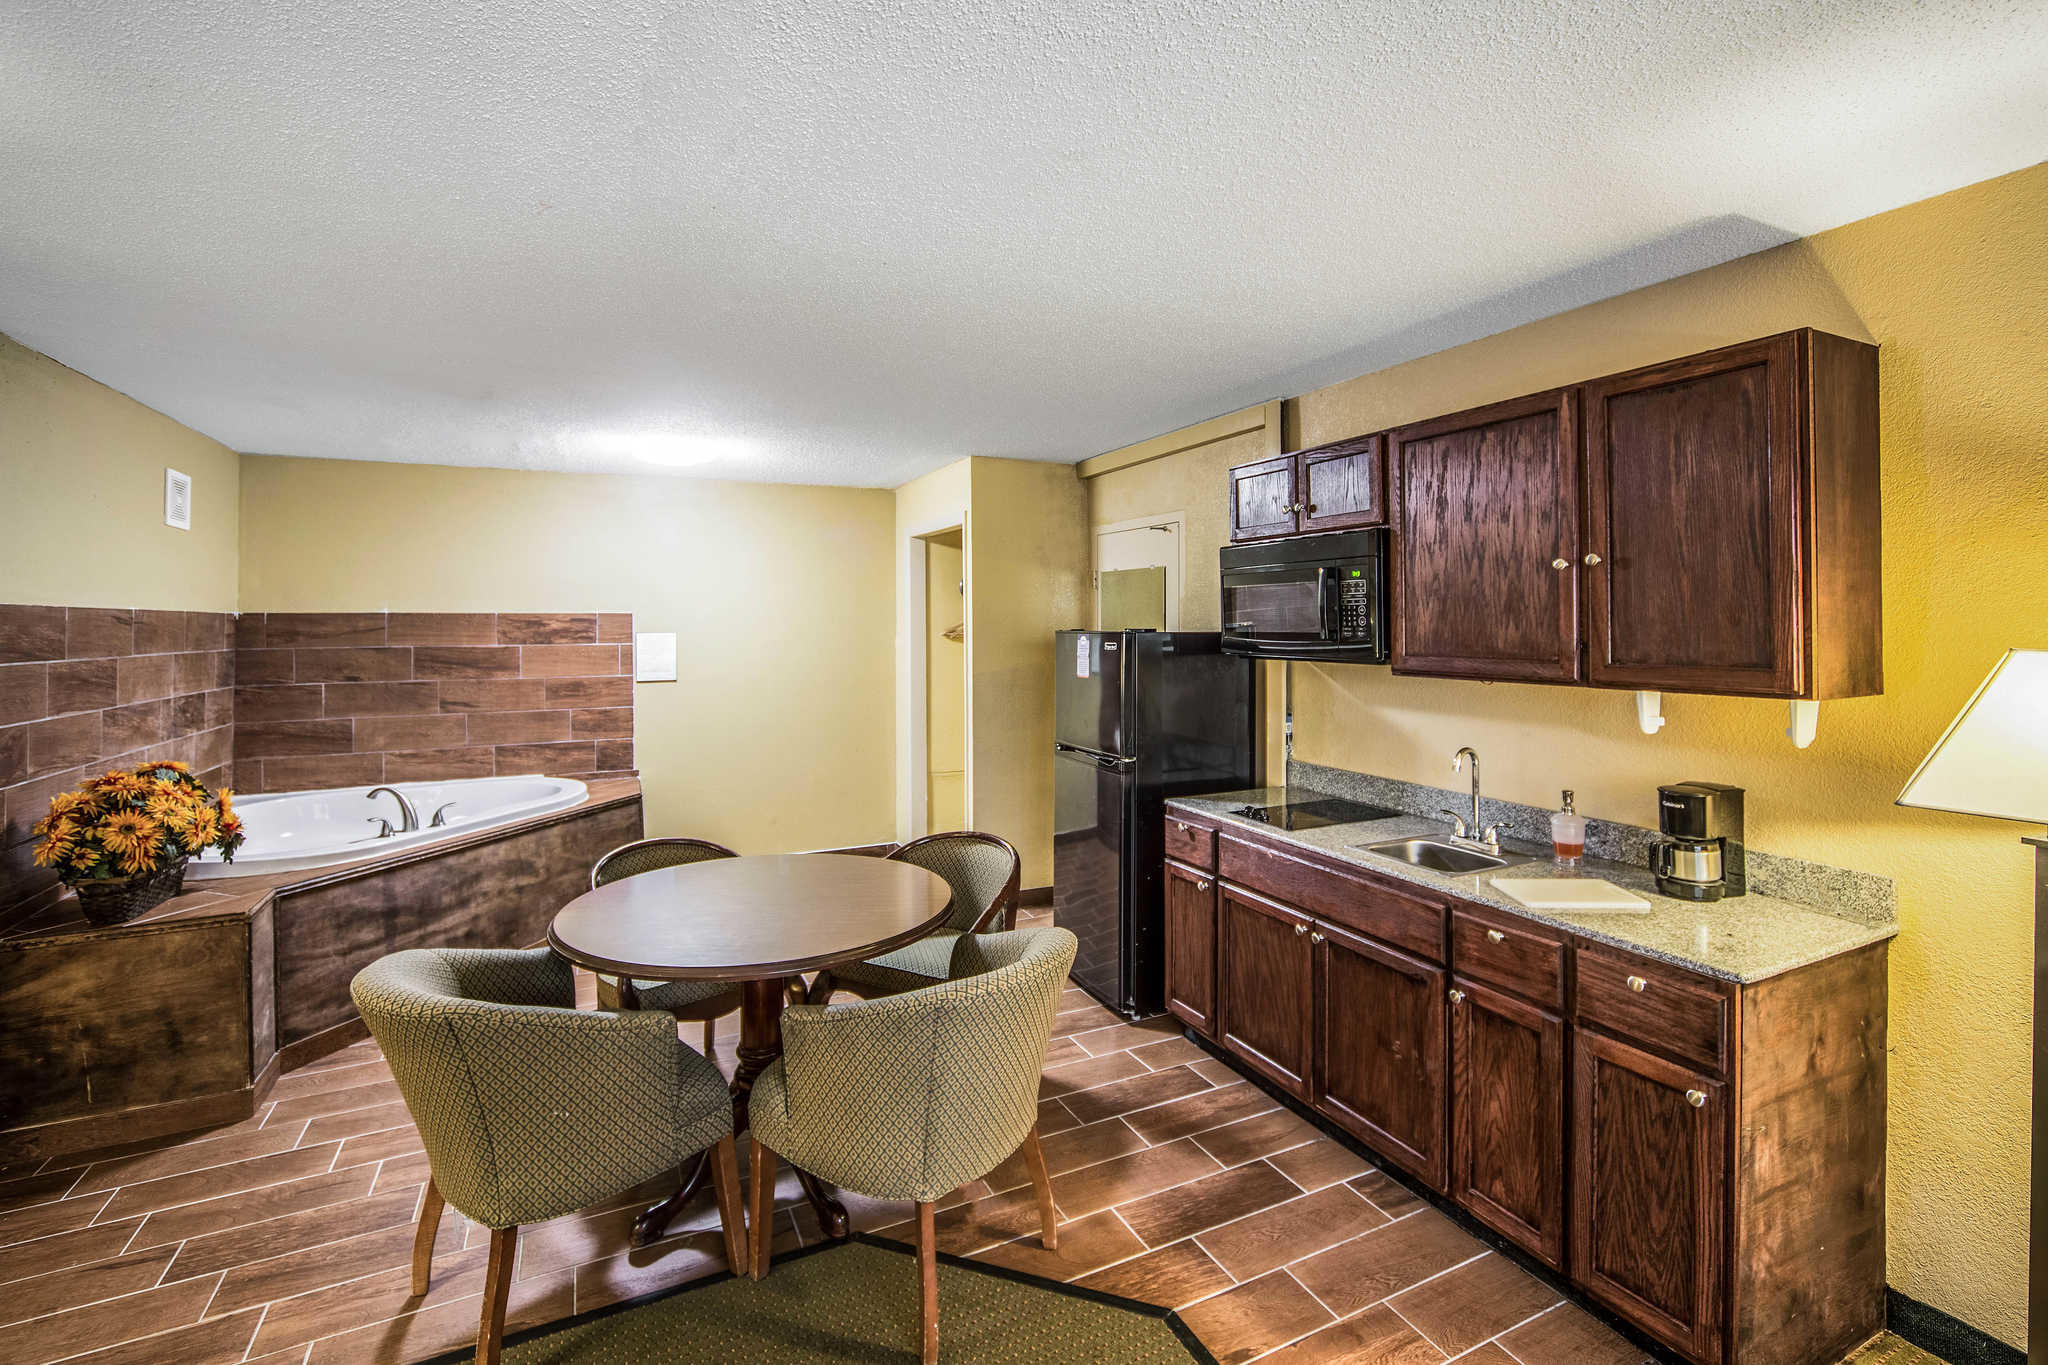 Suburban Extended Stay Hotel image 19